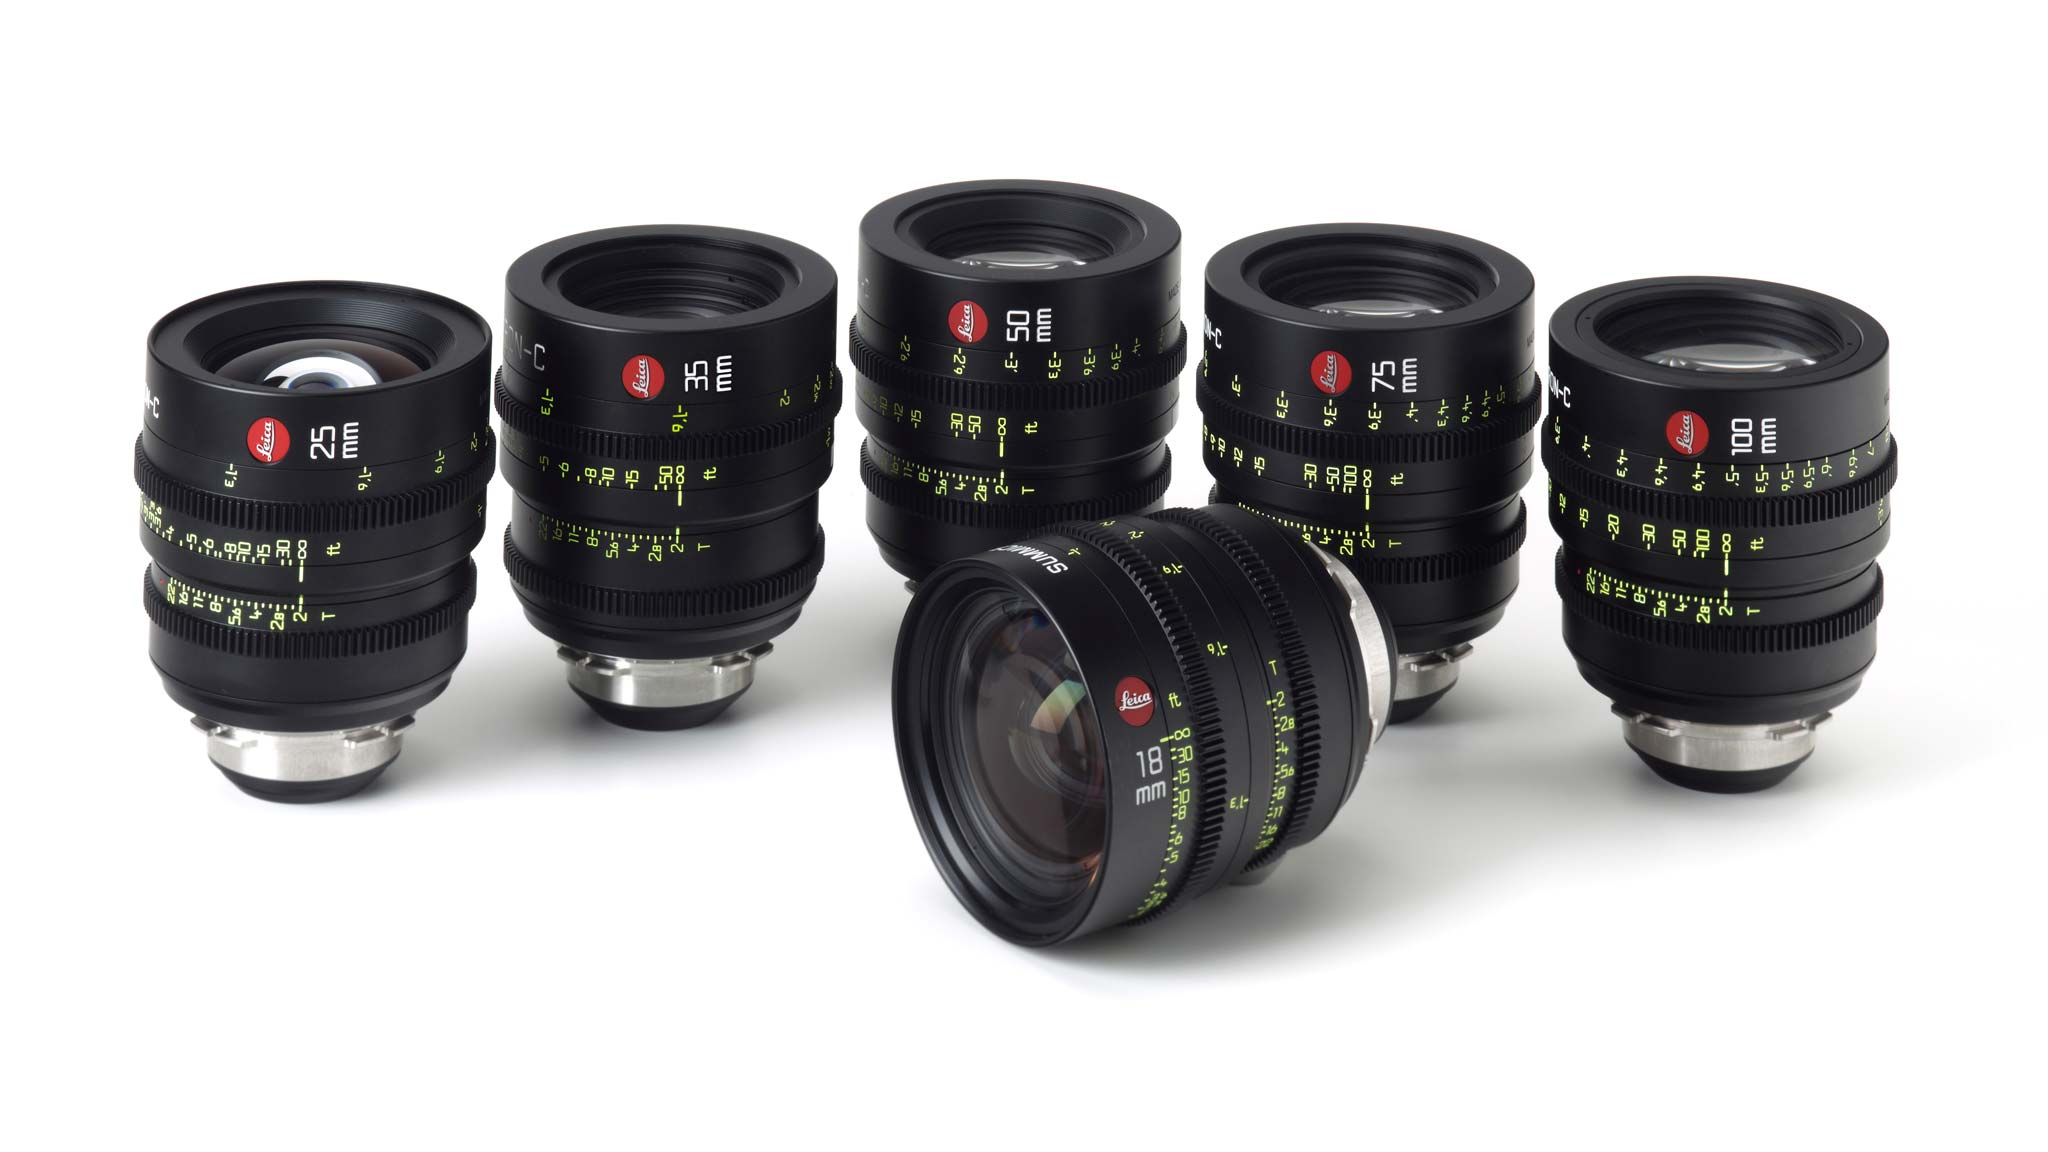 Leica Summicron-C Lenses   Now available in rentals, the new Leica Summicron-C lenses are a cost-effective companion to their Summilux-C siblings, as comfortable on the new generation of PL mount cameras introduced lately (F5, F55, C300, C500, Epic Dragon) as they are on Alexa, F65, Epic and other camera systems.  Available now in 18mm, 25mm, 35mm, 50mm, 75mm, 100mm and 135mm focal lengths.